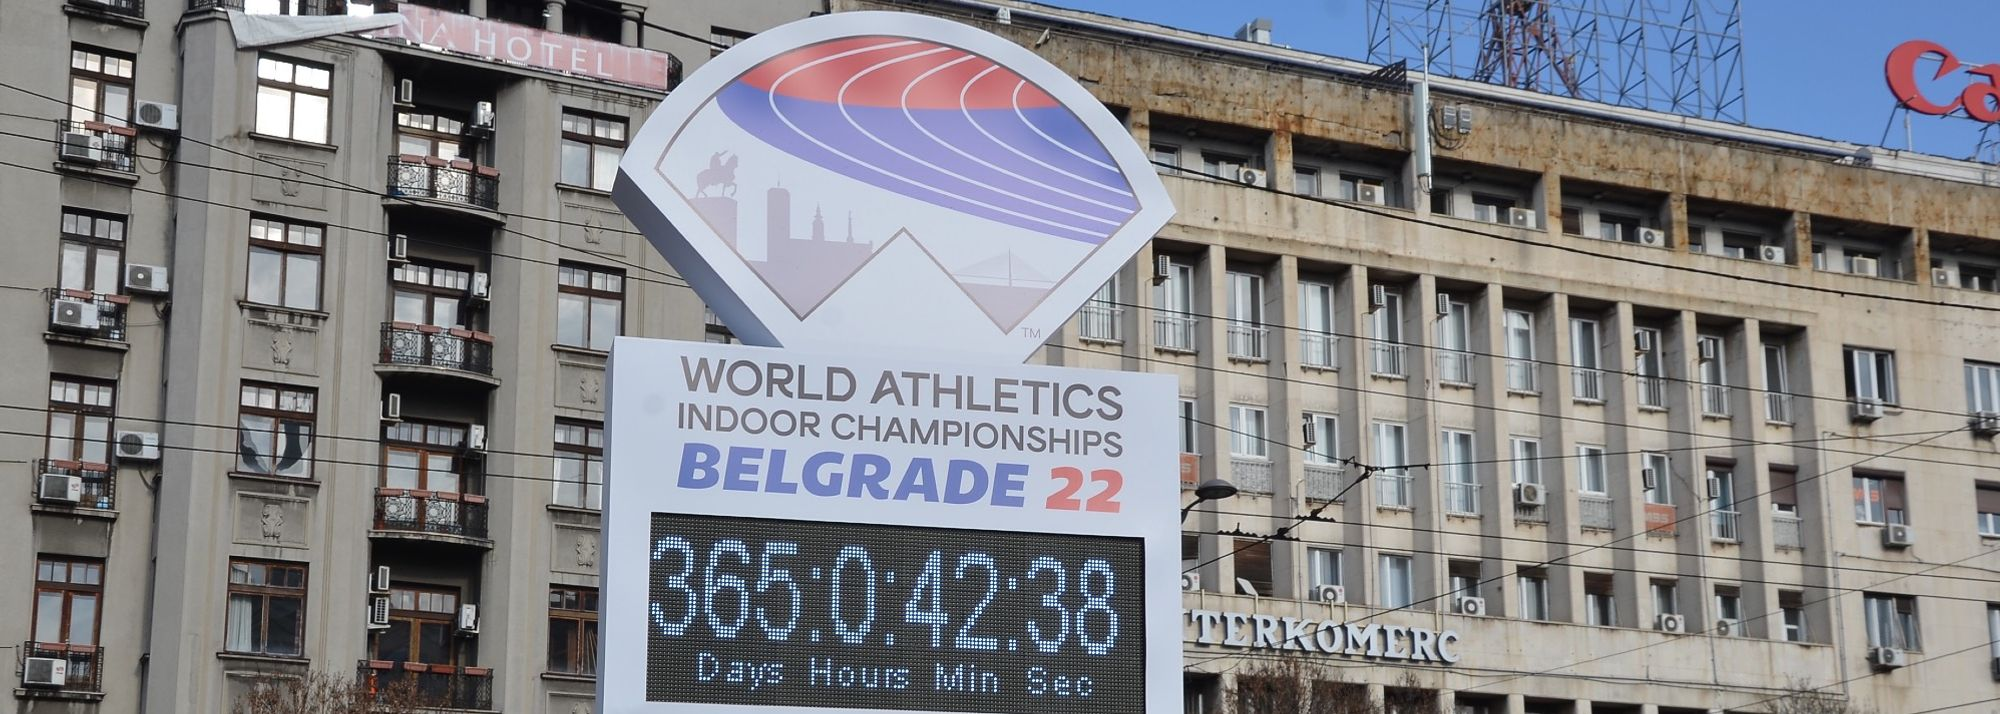 A unique countdown clock called 'The World on the Track' has been unveiled to mark the one year to go milestone ahead of the World Athletics Indoor Championships Belgrade22.